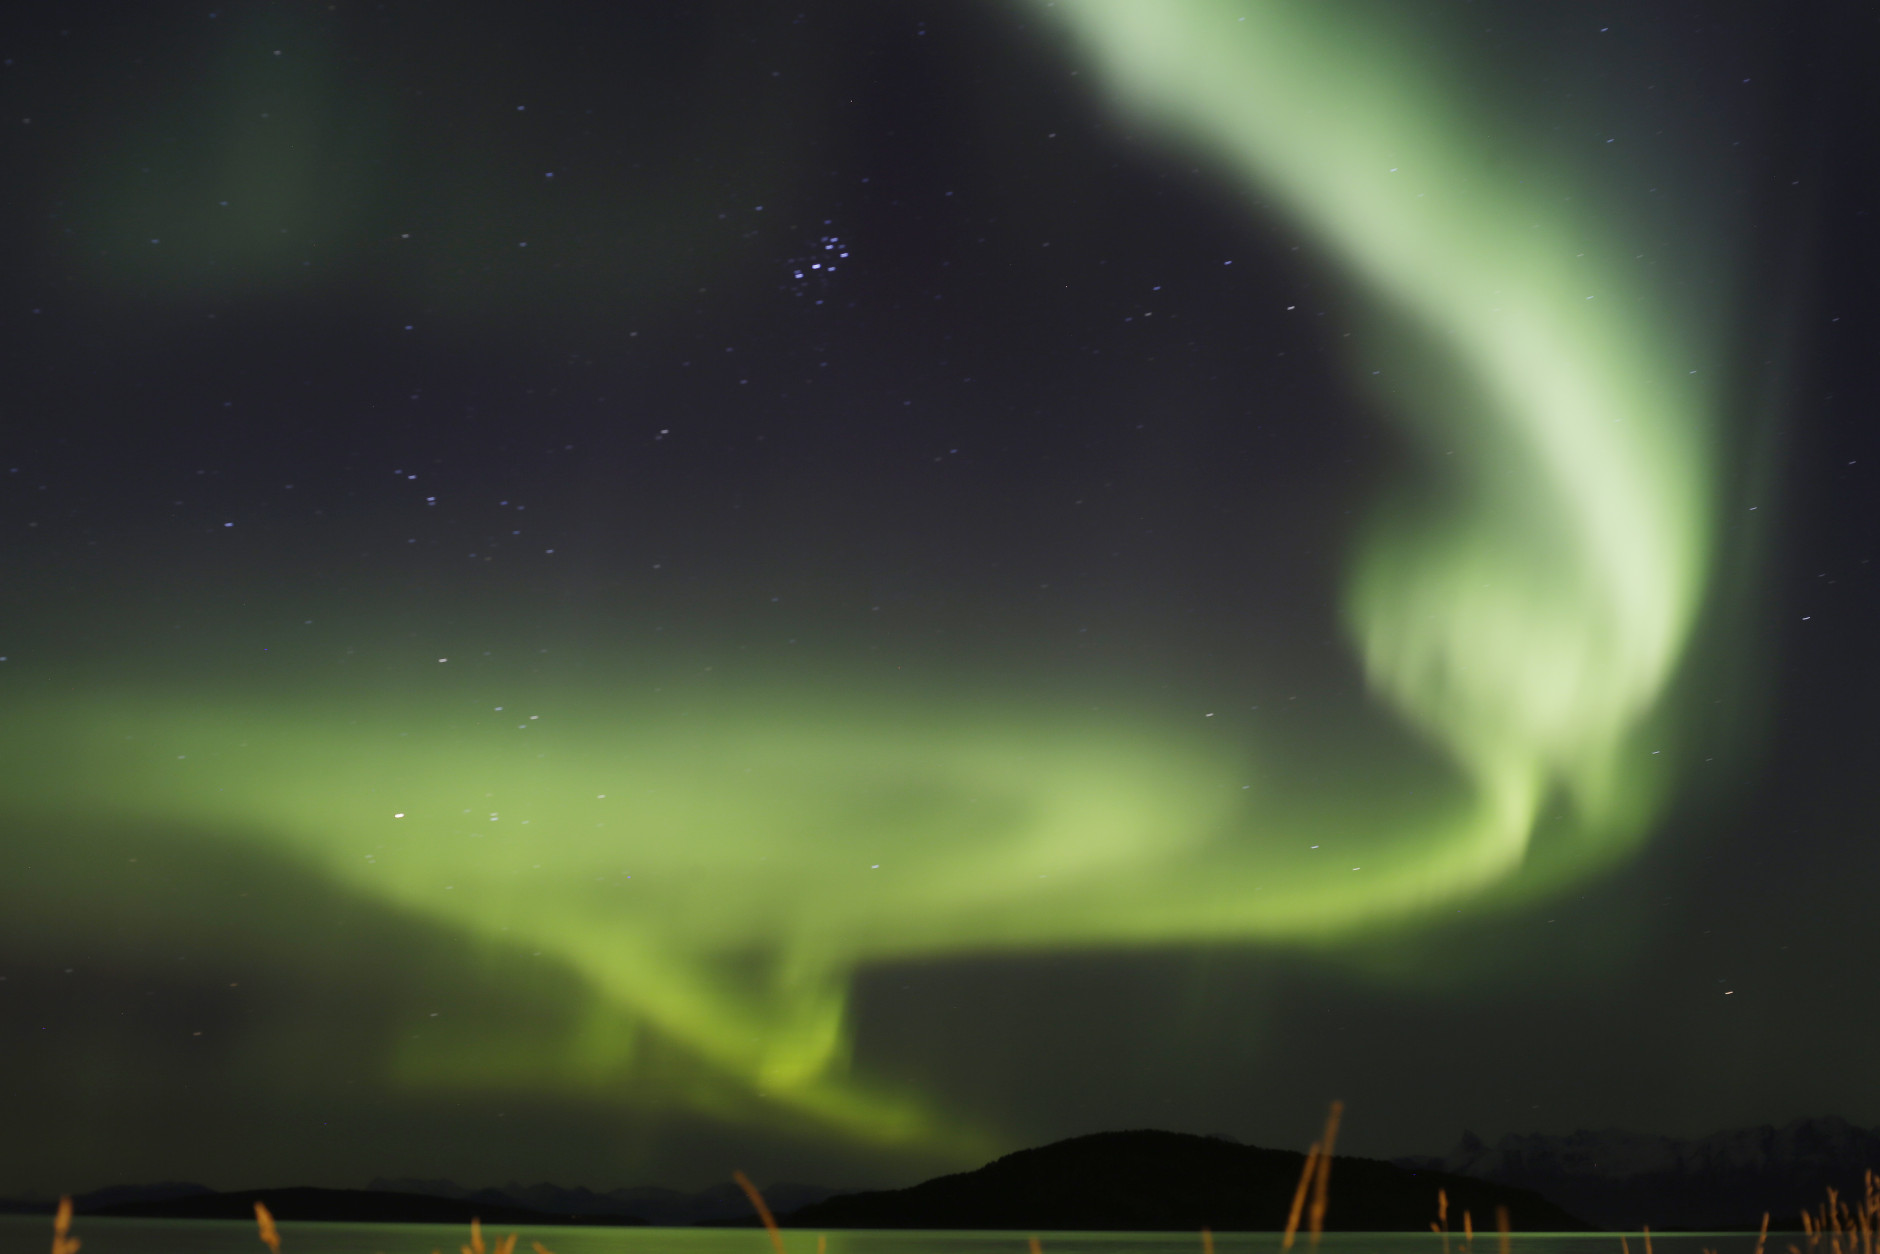 "FILE - This Oct. 5, 2015 file photo shows the aurora borealis, or Northern Lights, over the Norwegian town of Harstad. Tourism to destinations like Norway, Iceland and Alaska has been growing in popularity in the coldest, darkest months, and Norway in particular has seen more tourists because of the movie ""Frozen."" (AP Photo/Gregorio Borgia, File)"